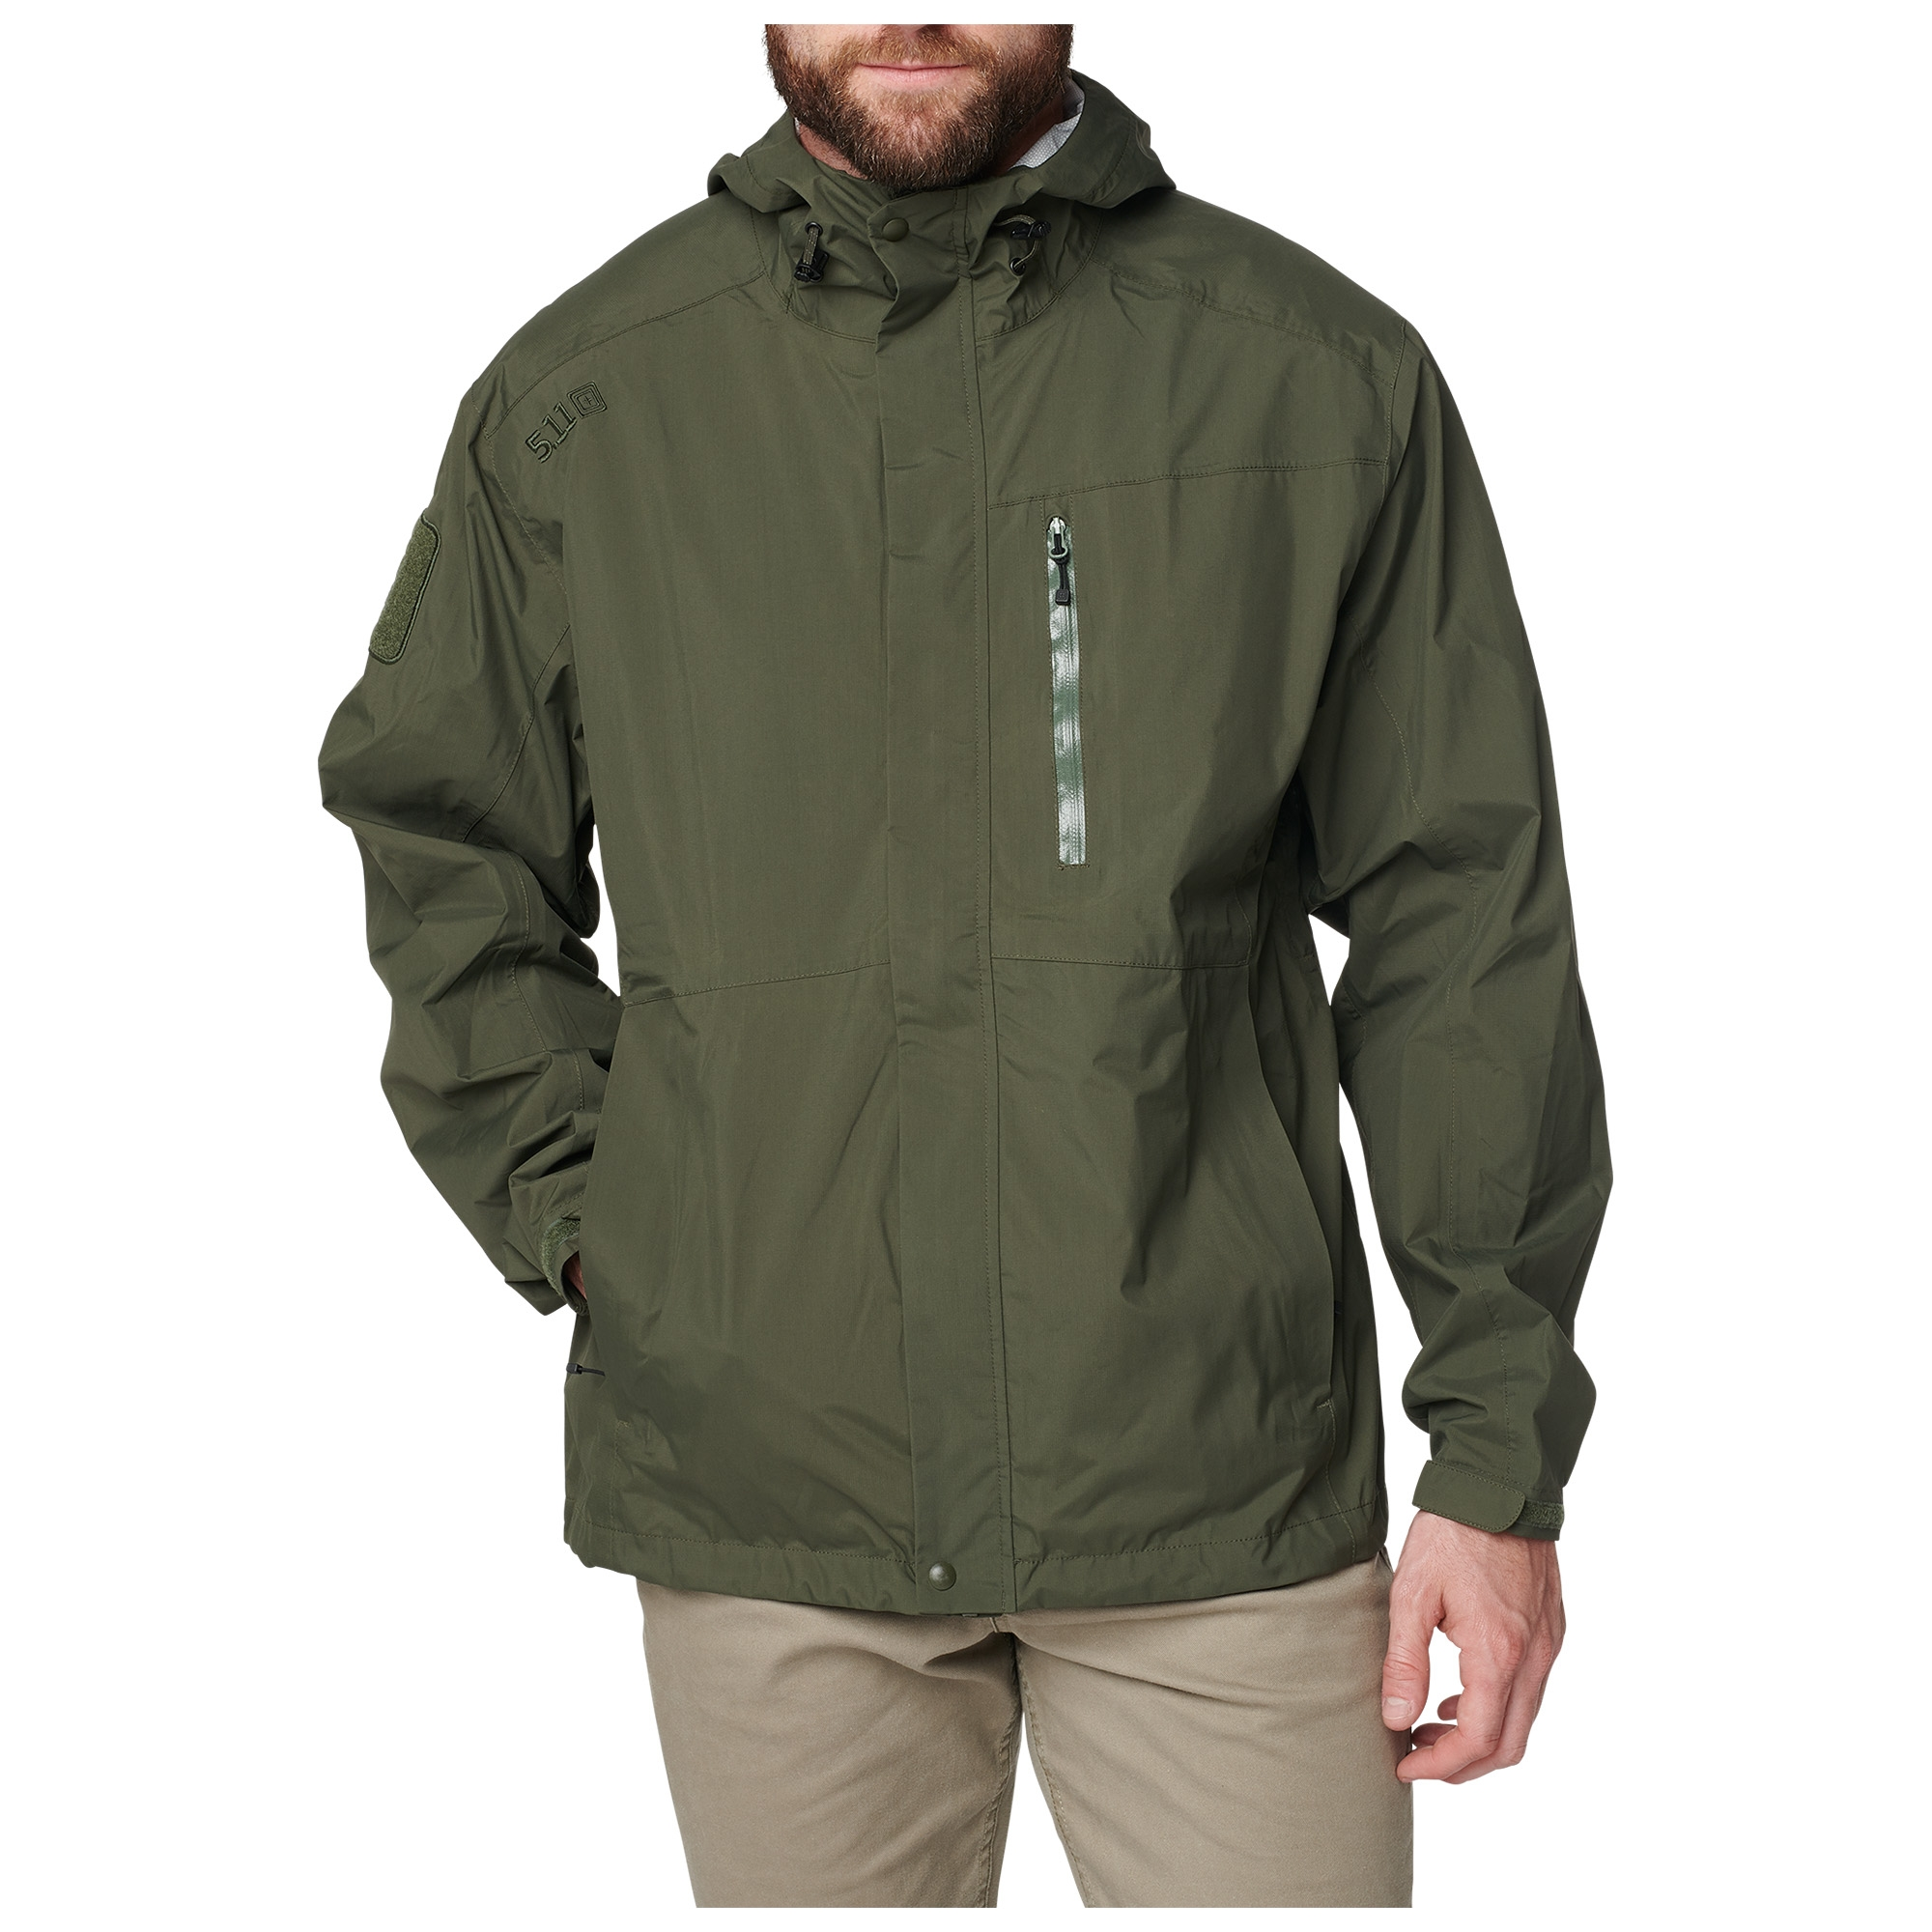 5.11 Tactical Men's Aurora Shell Jacket (Green)